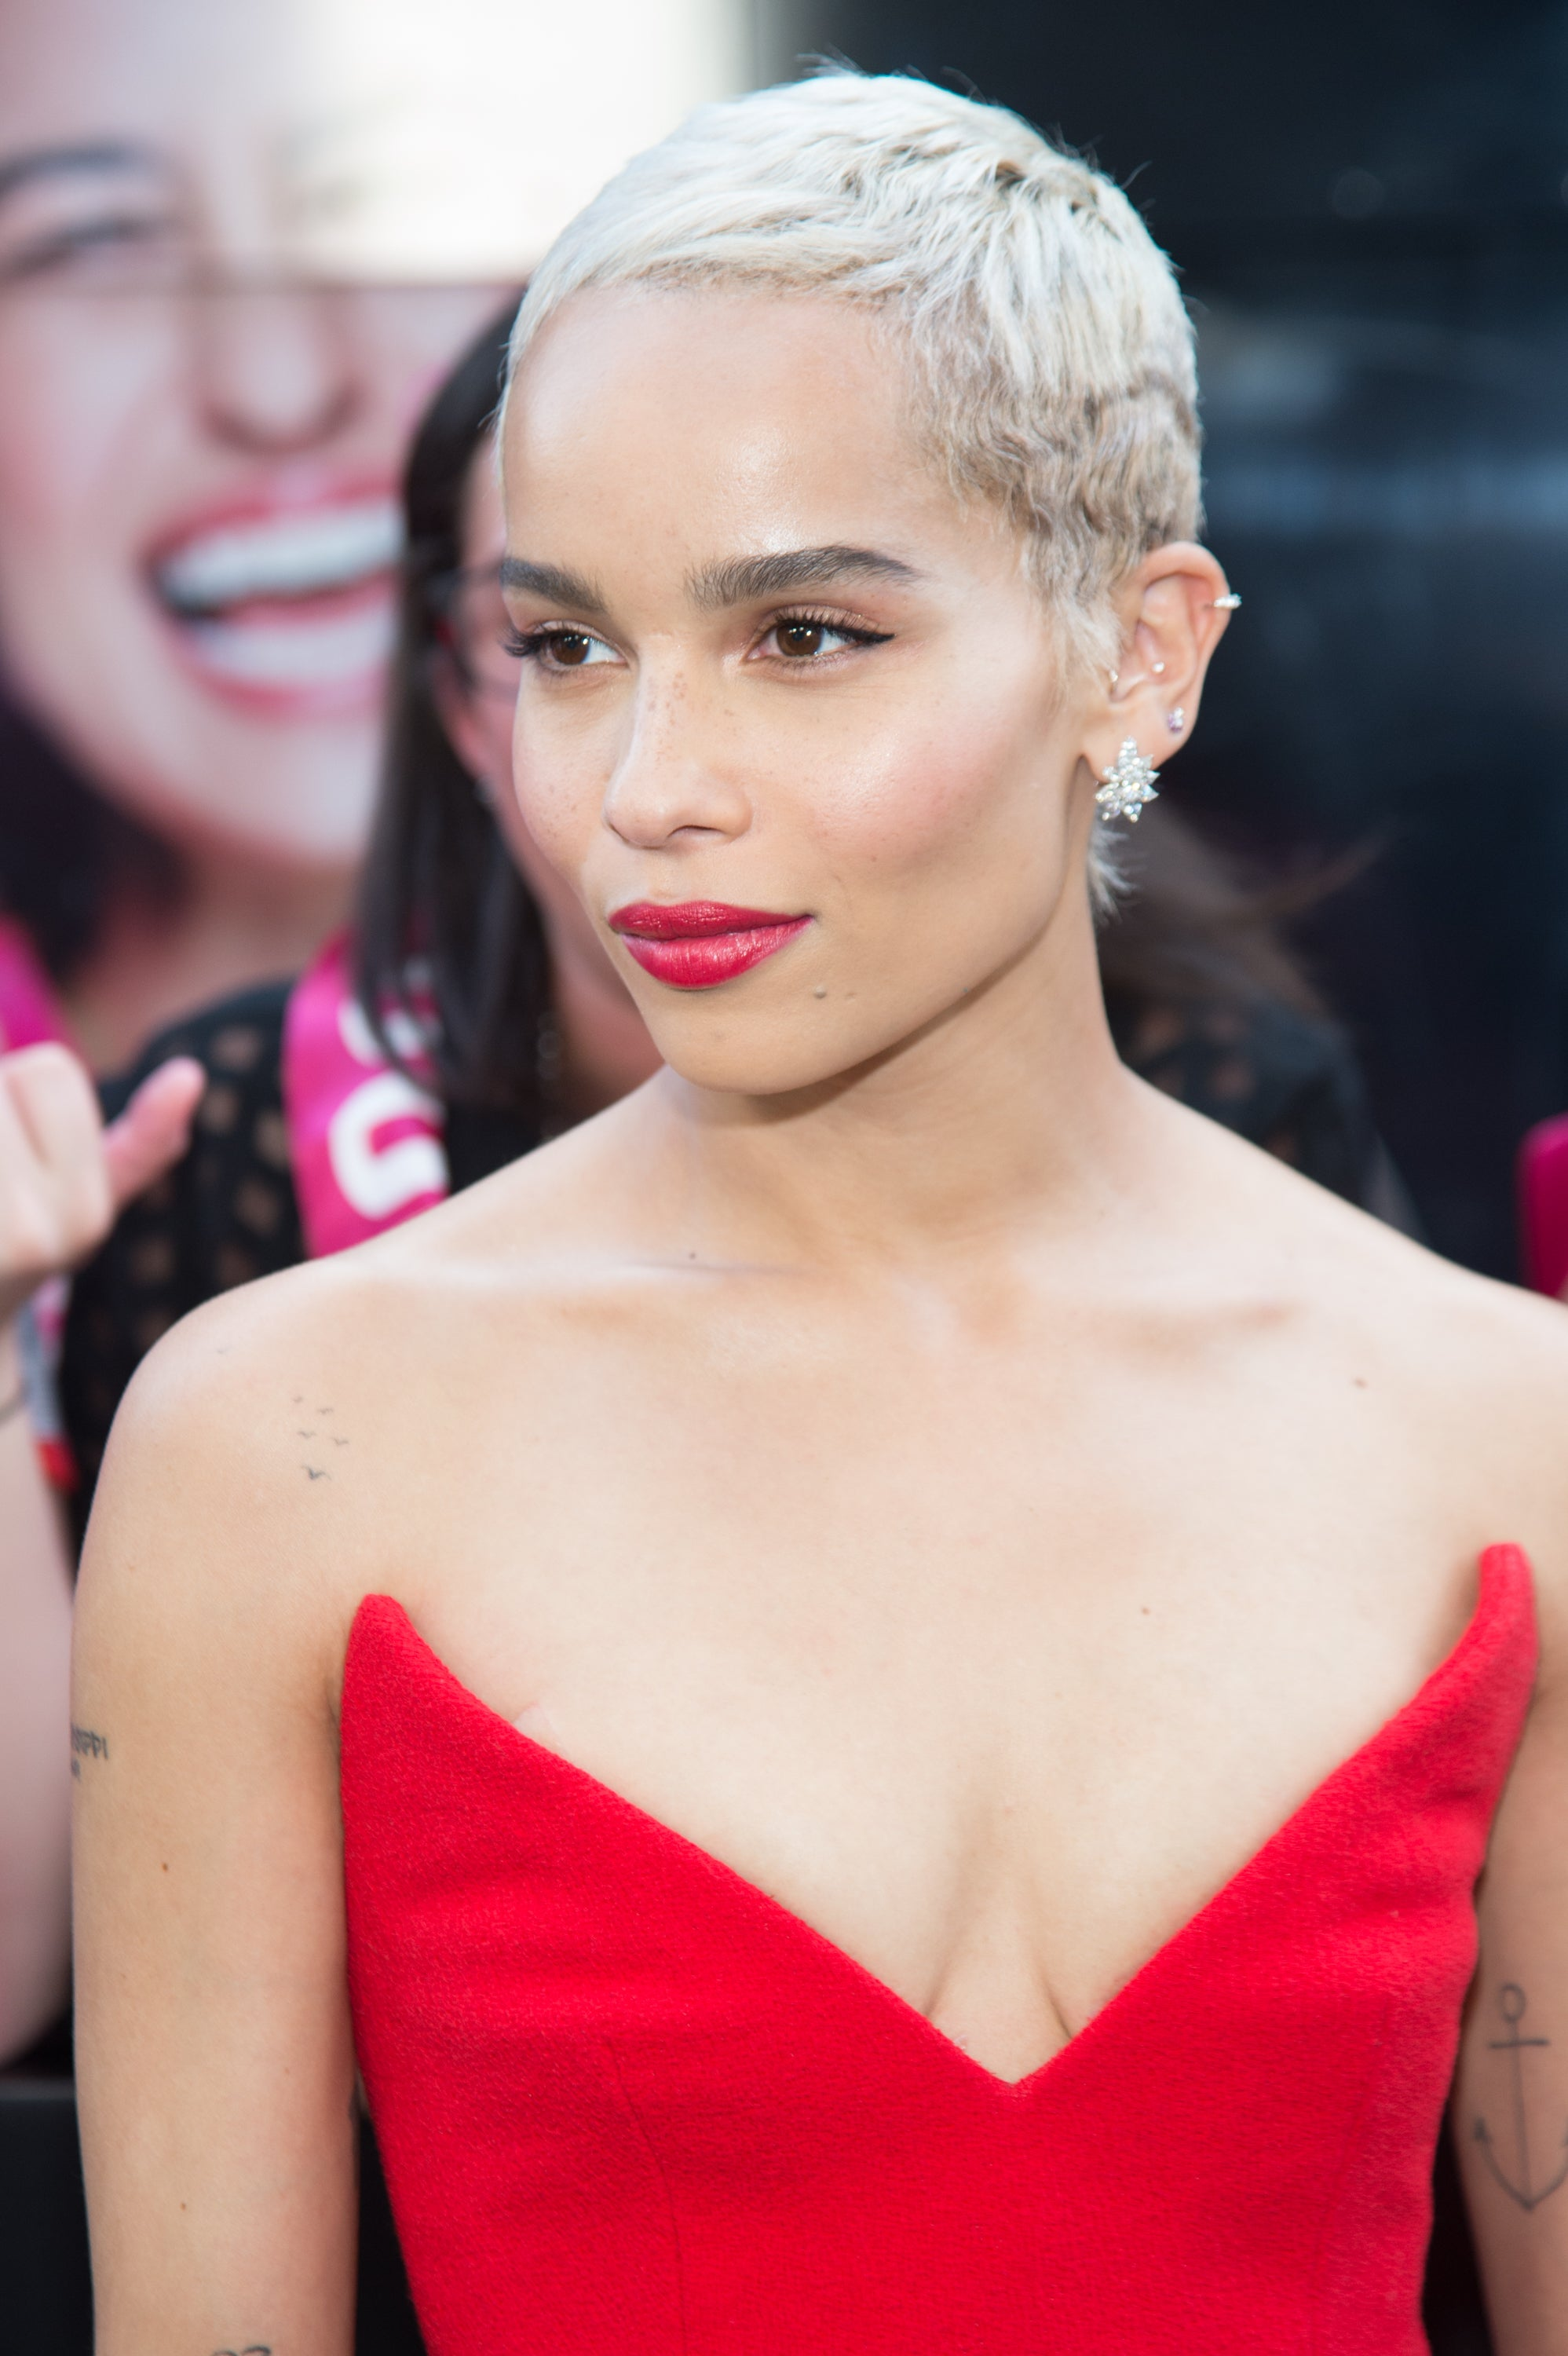 Zoe Kravitz Matches Her Makeup and Outfit at 'Rough Night' Premiere